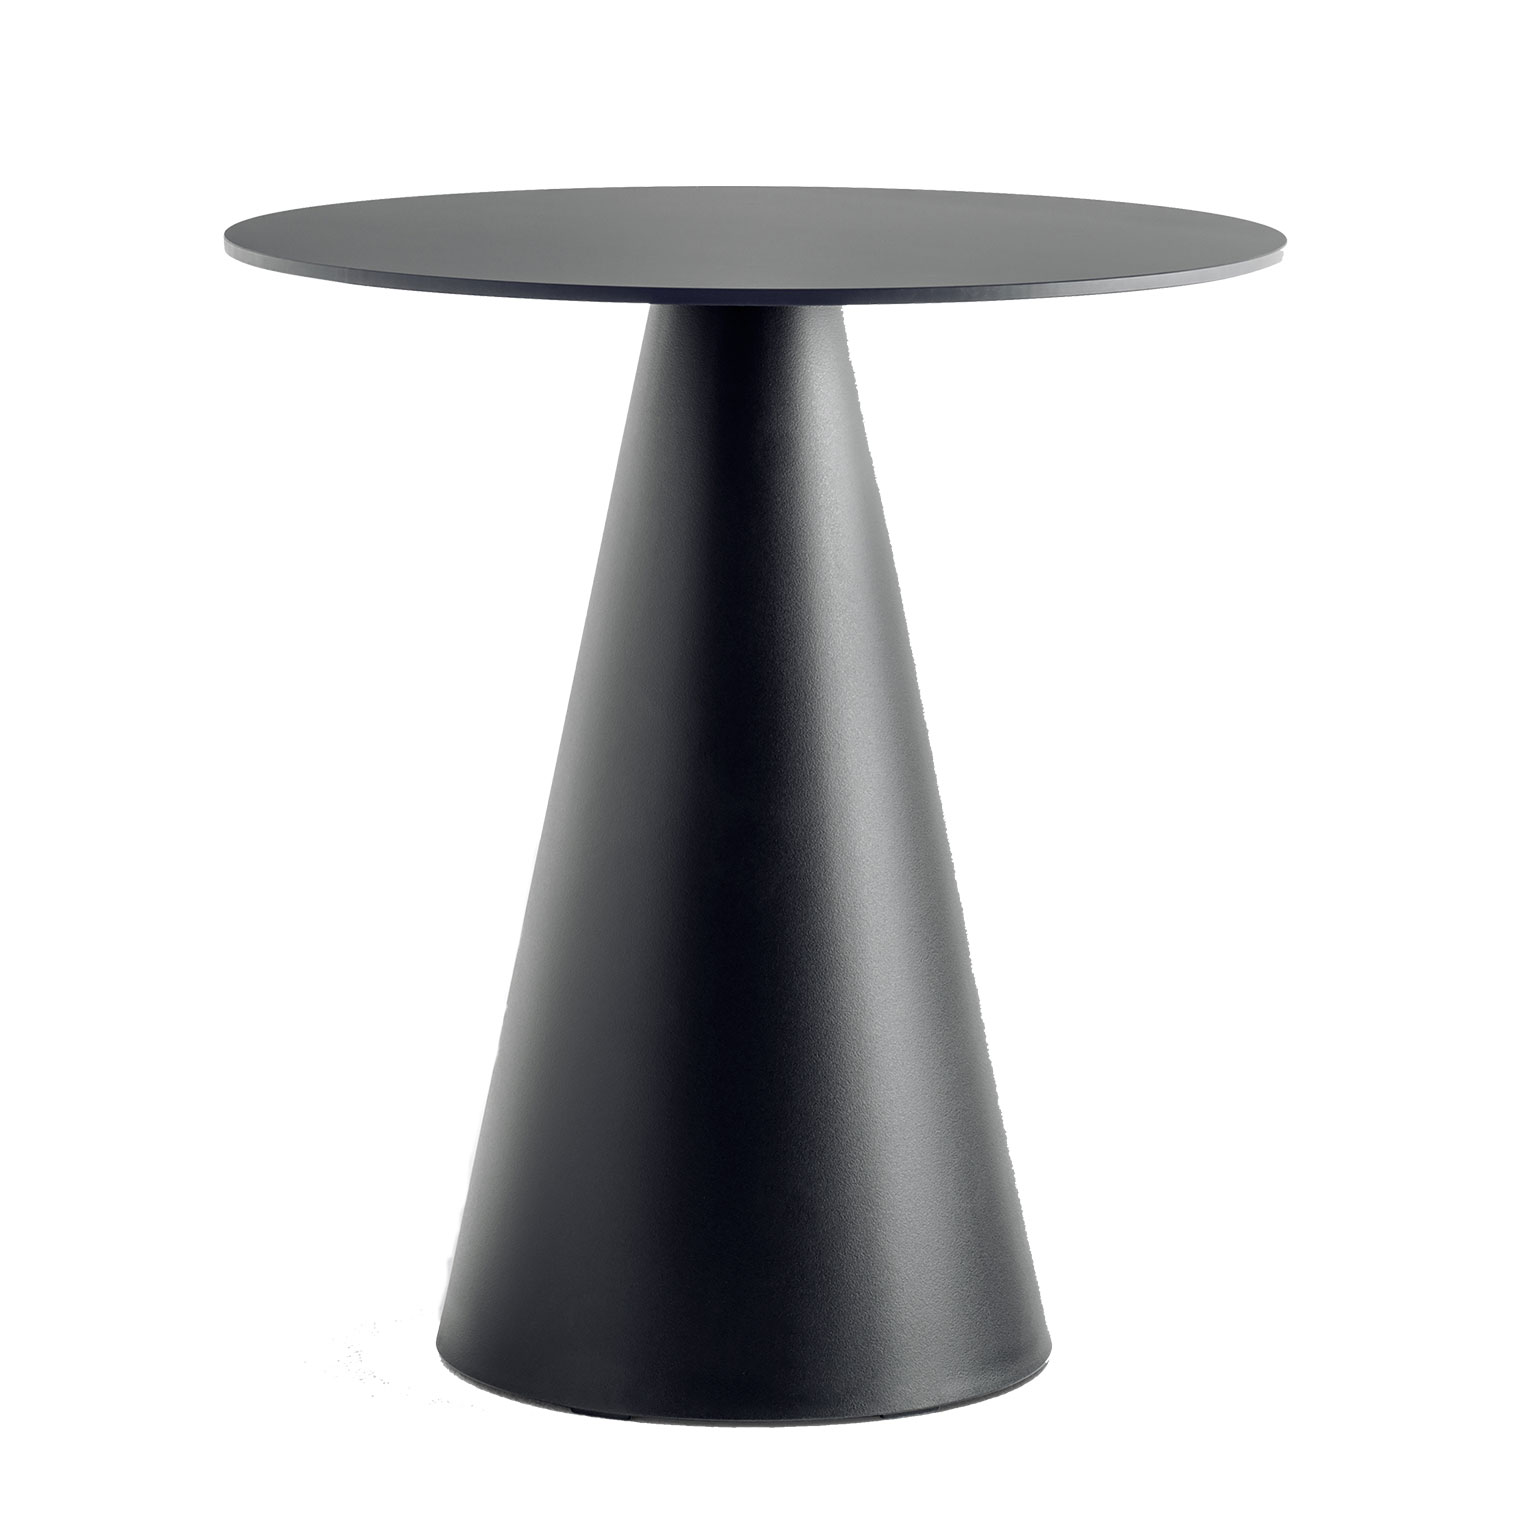 Ikon 865 Table Base